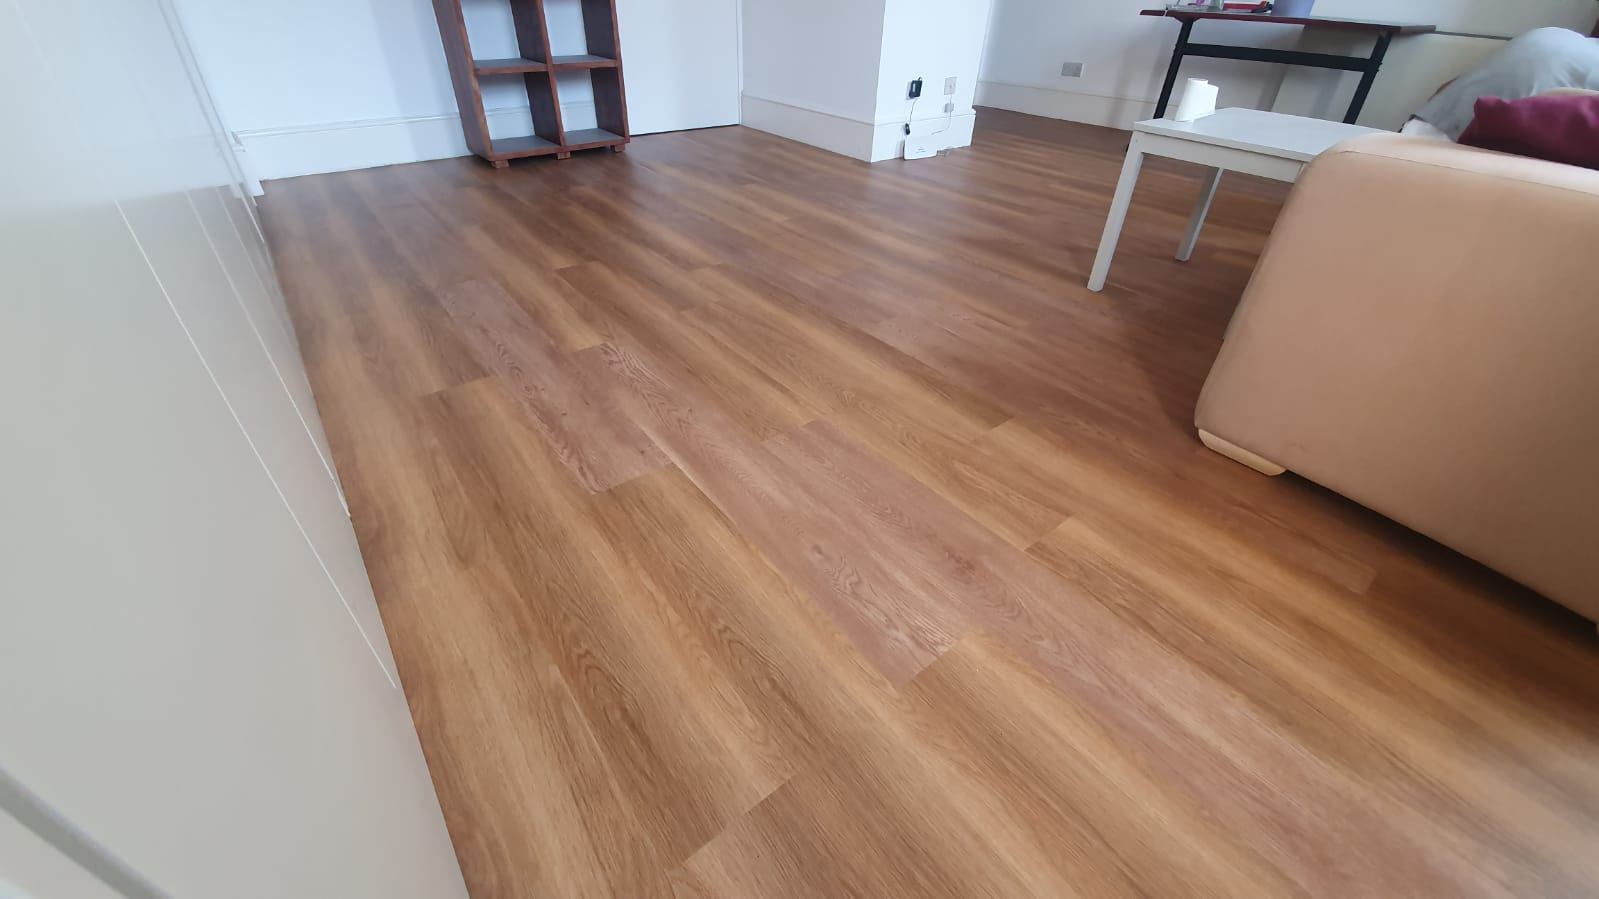 Amtico Spacia New England Oak Vinyl Flooring in Mayfair 3